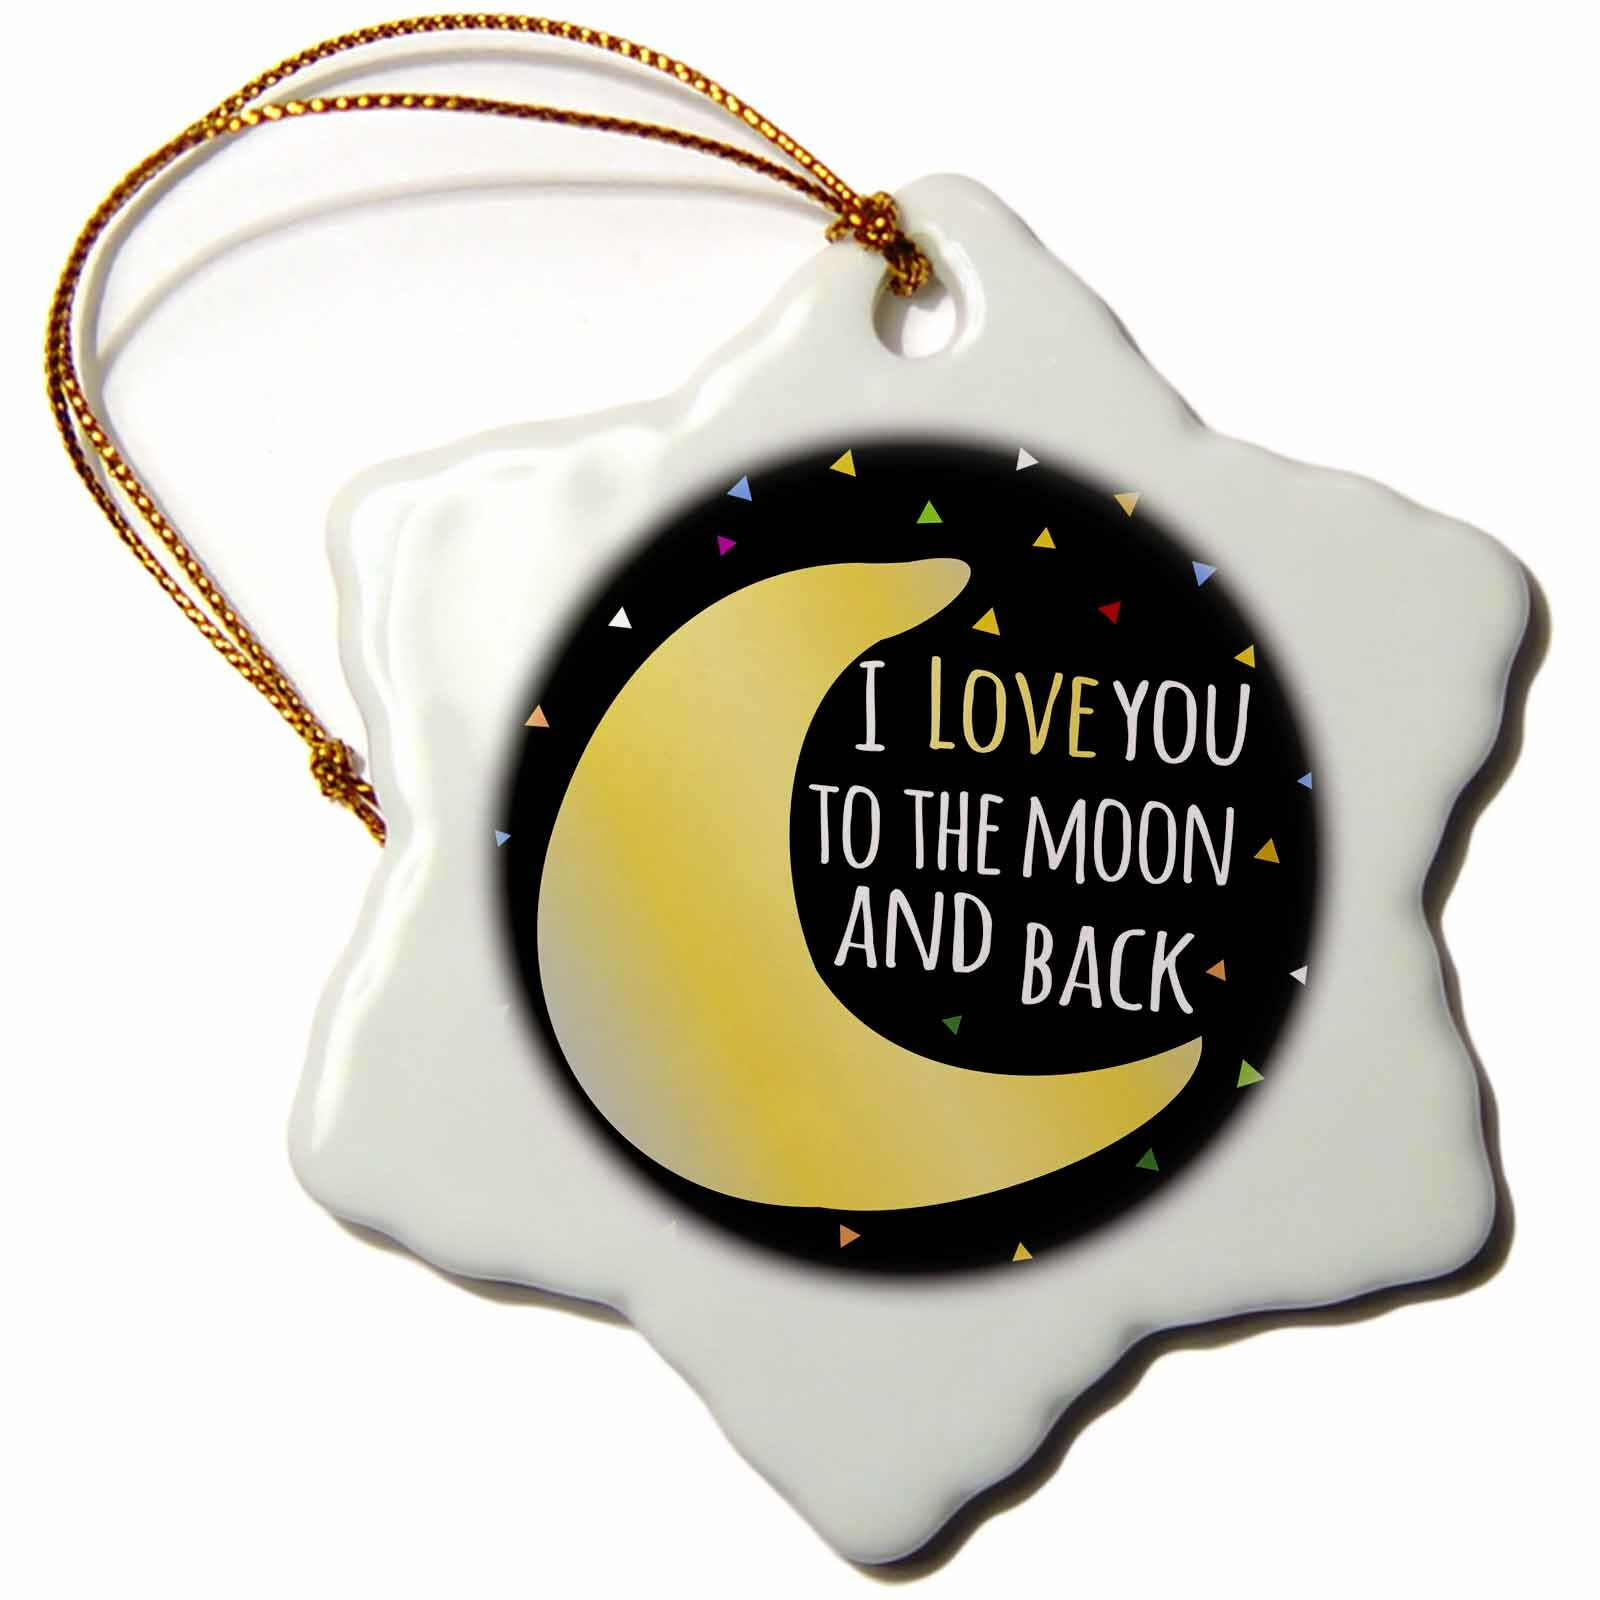 The Holiday Aisle I Love You To The Moon And Back Cute Saying With Triangle Stars Snowflake Holiday Shaped Ornament Wayfair